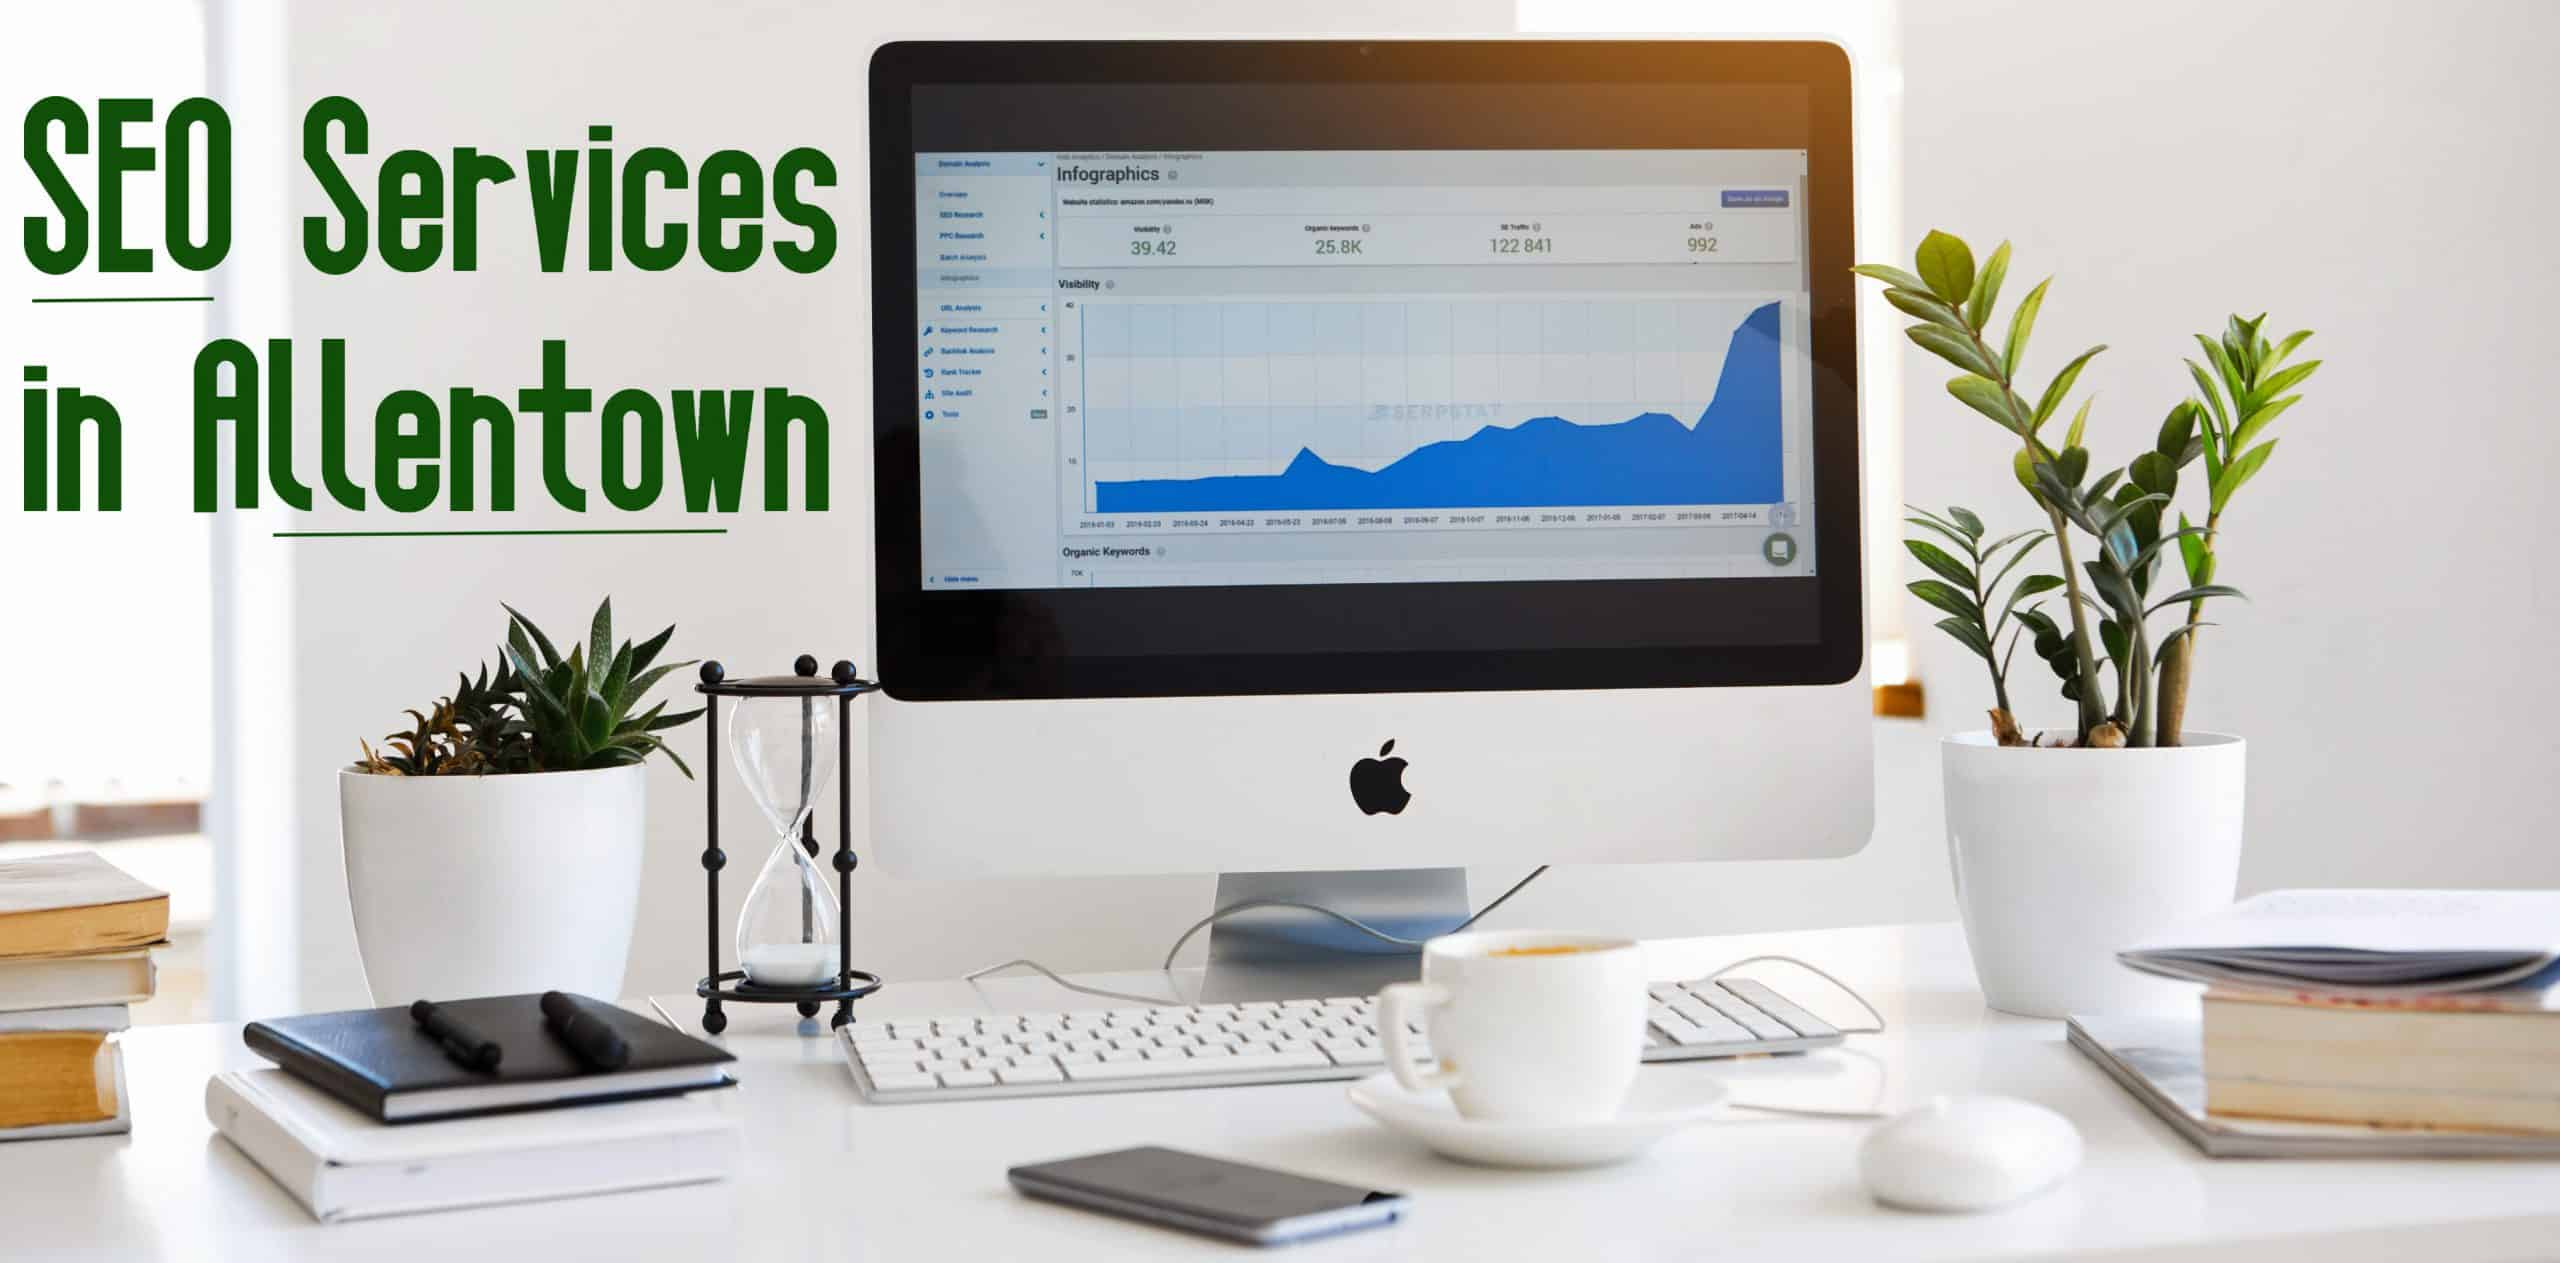 SEO services nearby Allentown